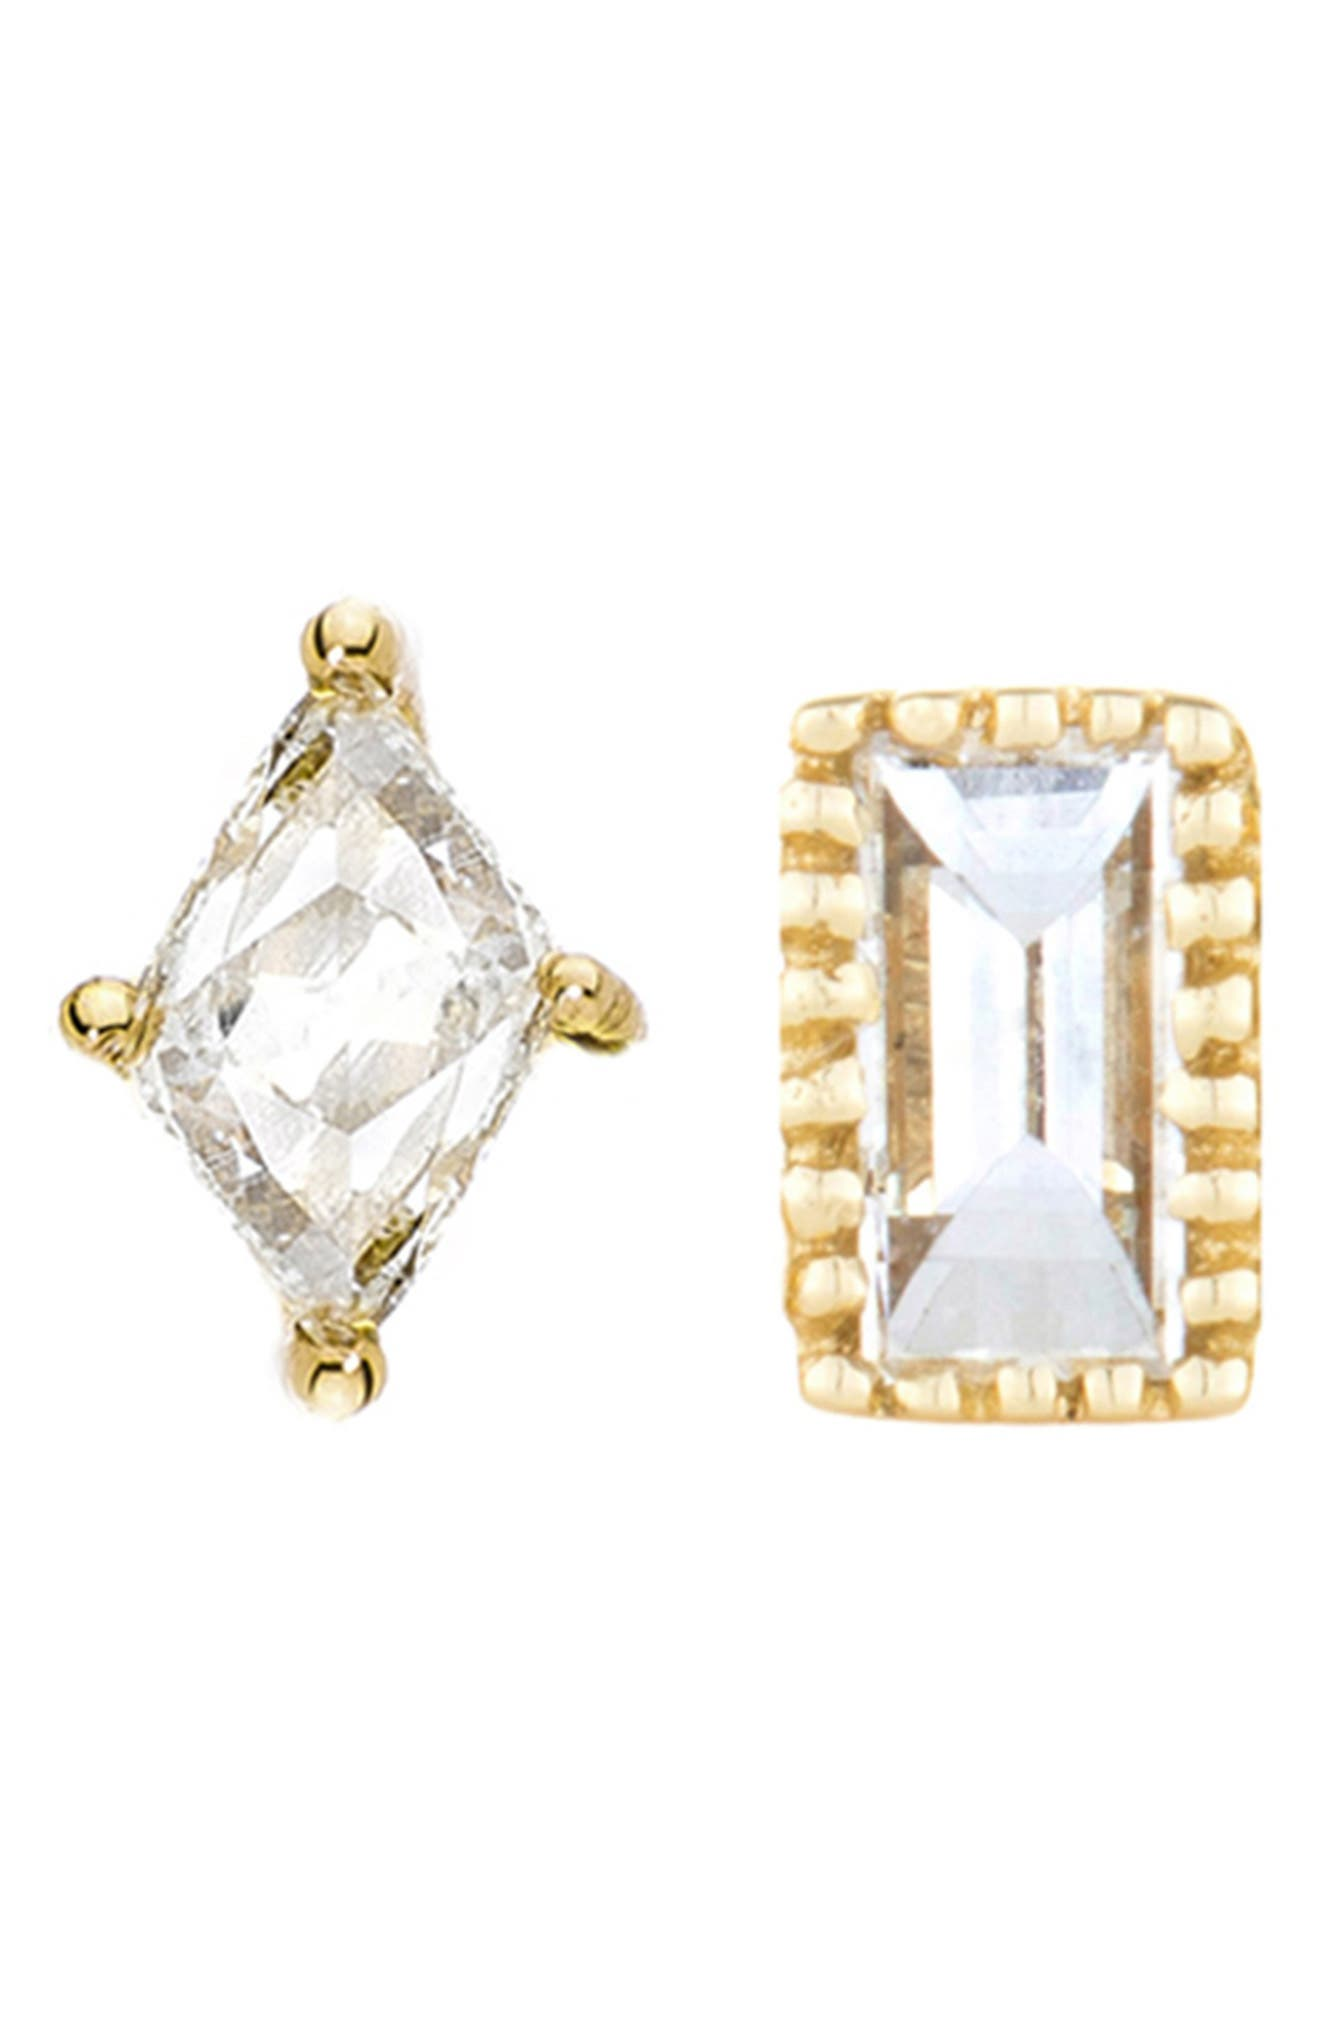 SETHI COUTURE Baguette Marquis Diamond Mismatched Stud Earrings in Yellow Gold/ Diamond